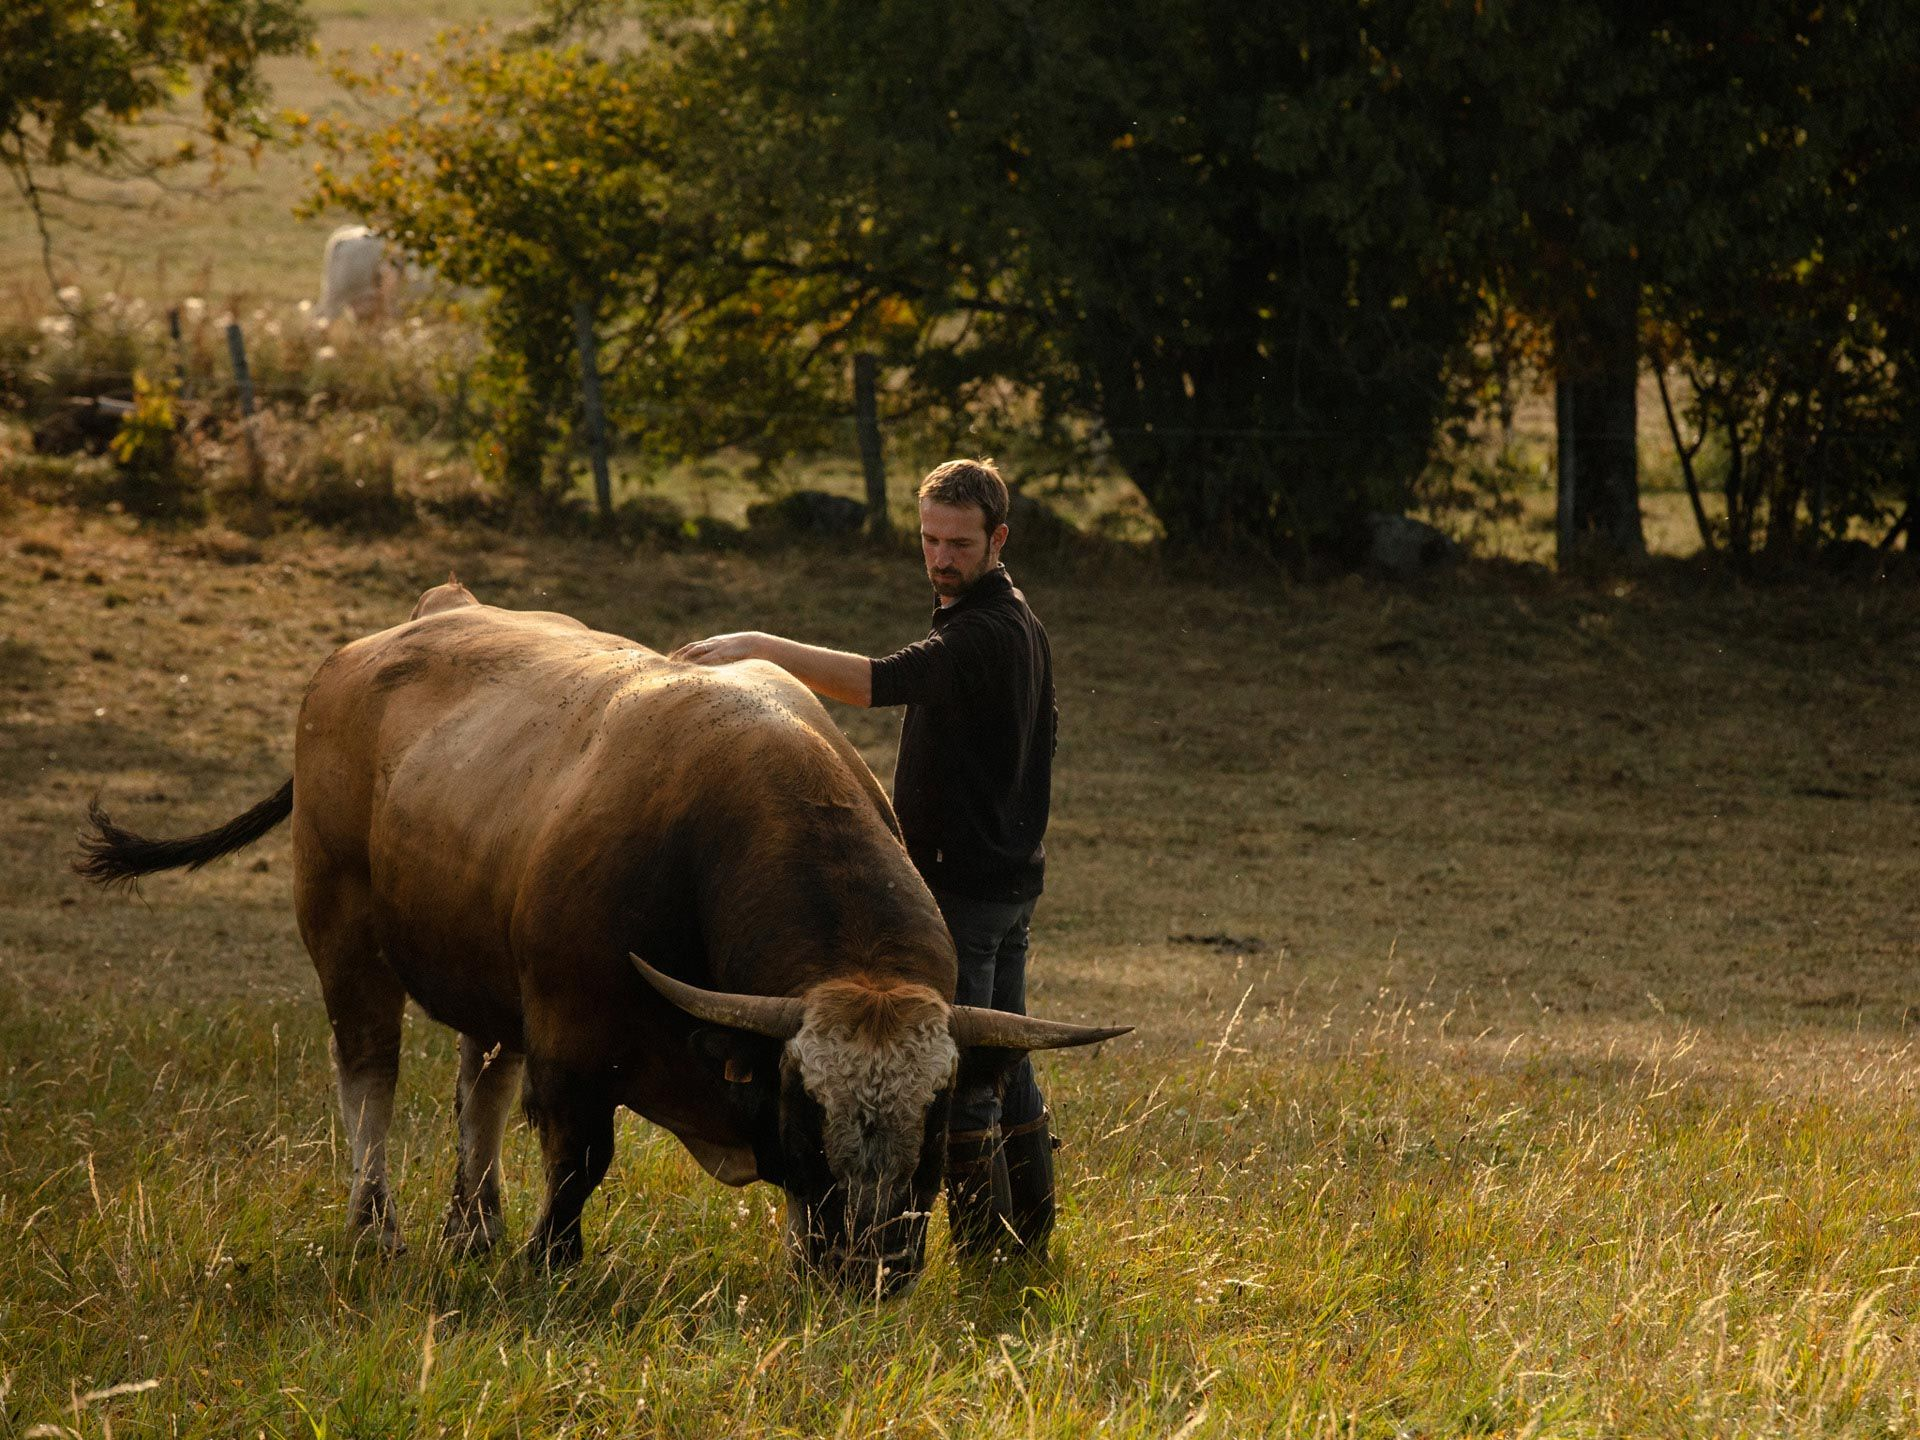 farmer in field petting his cow while she eats by Alexi Hobbs in Auvergne for Reflets de France